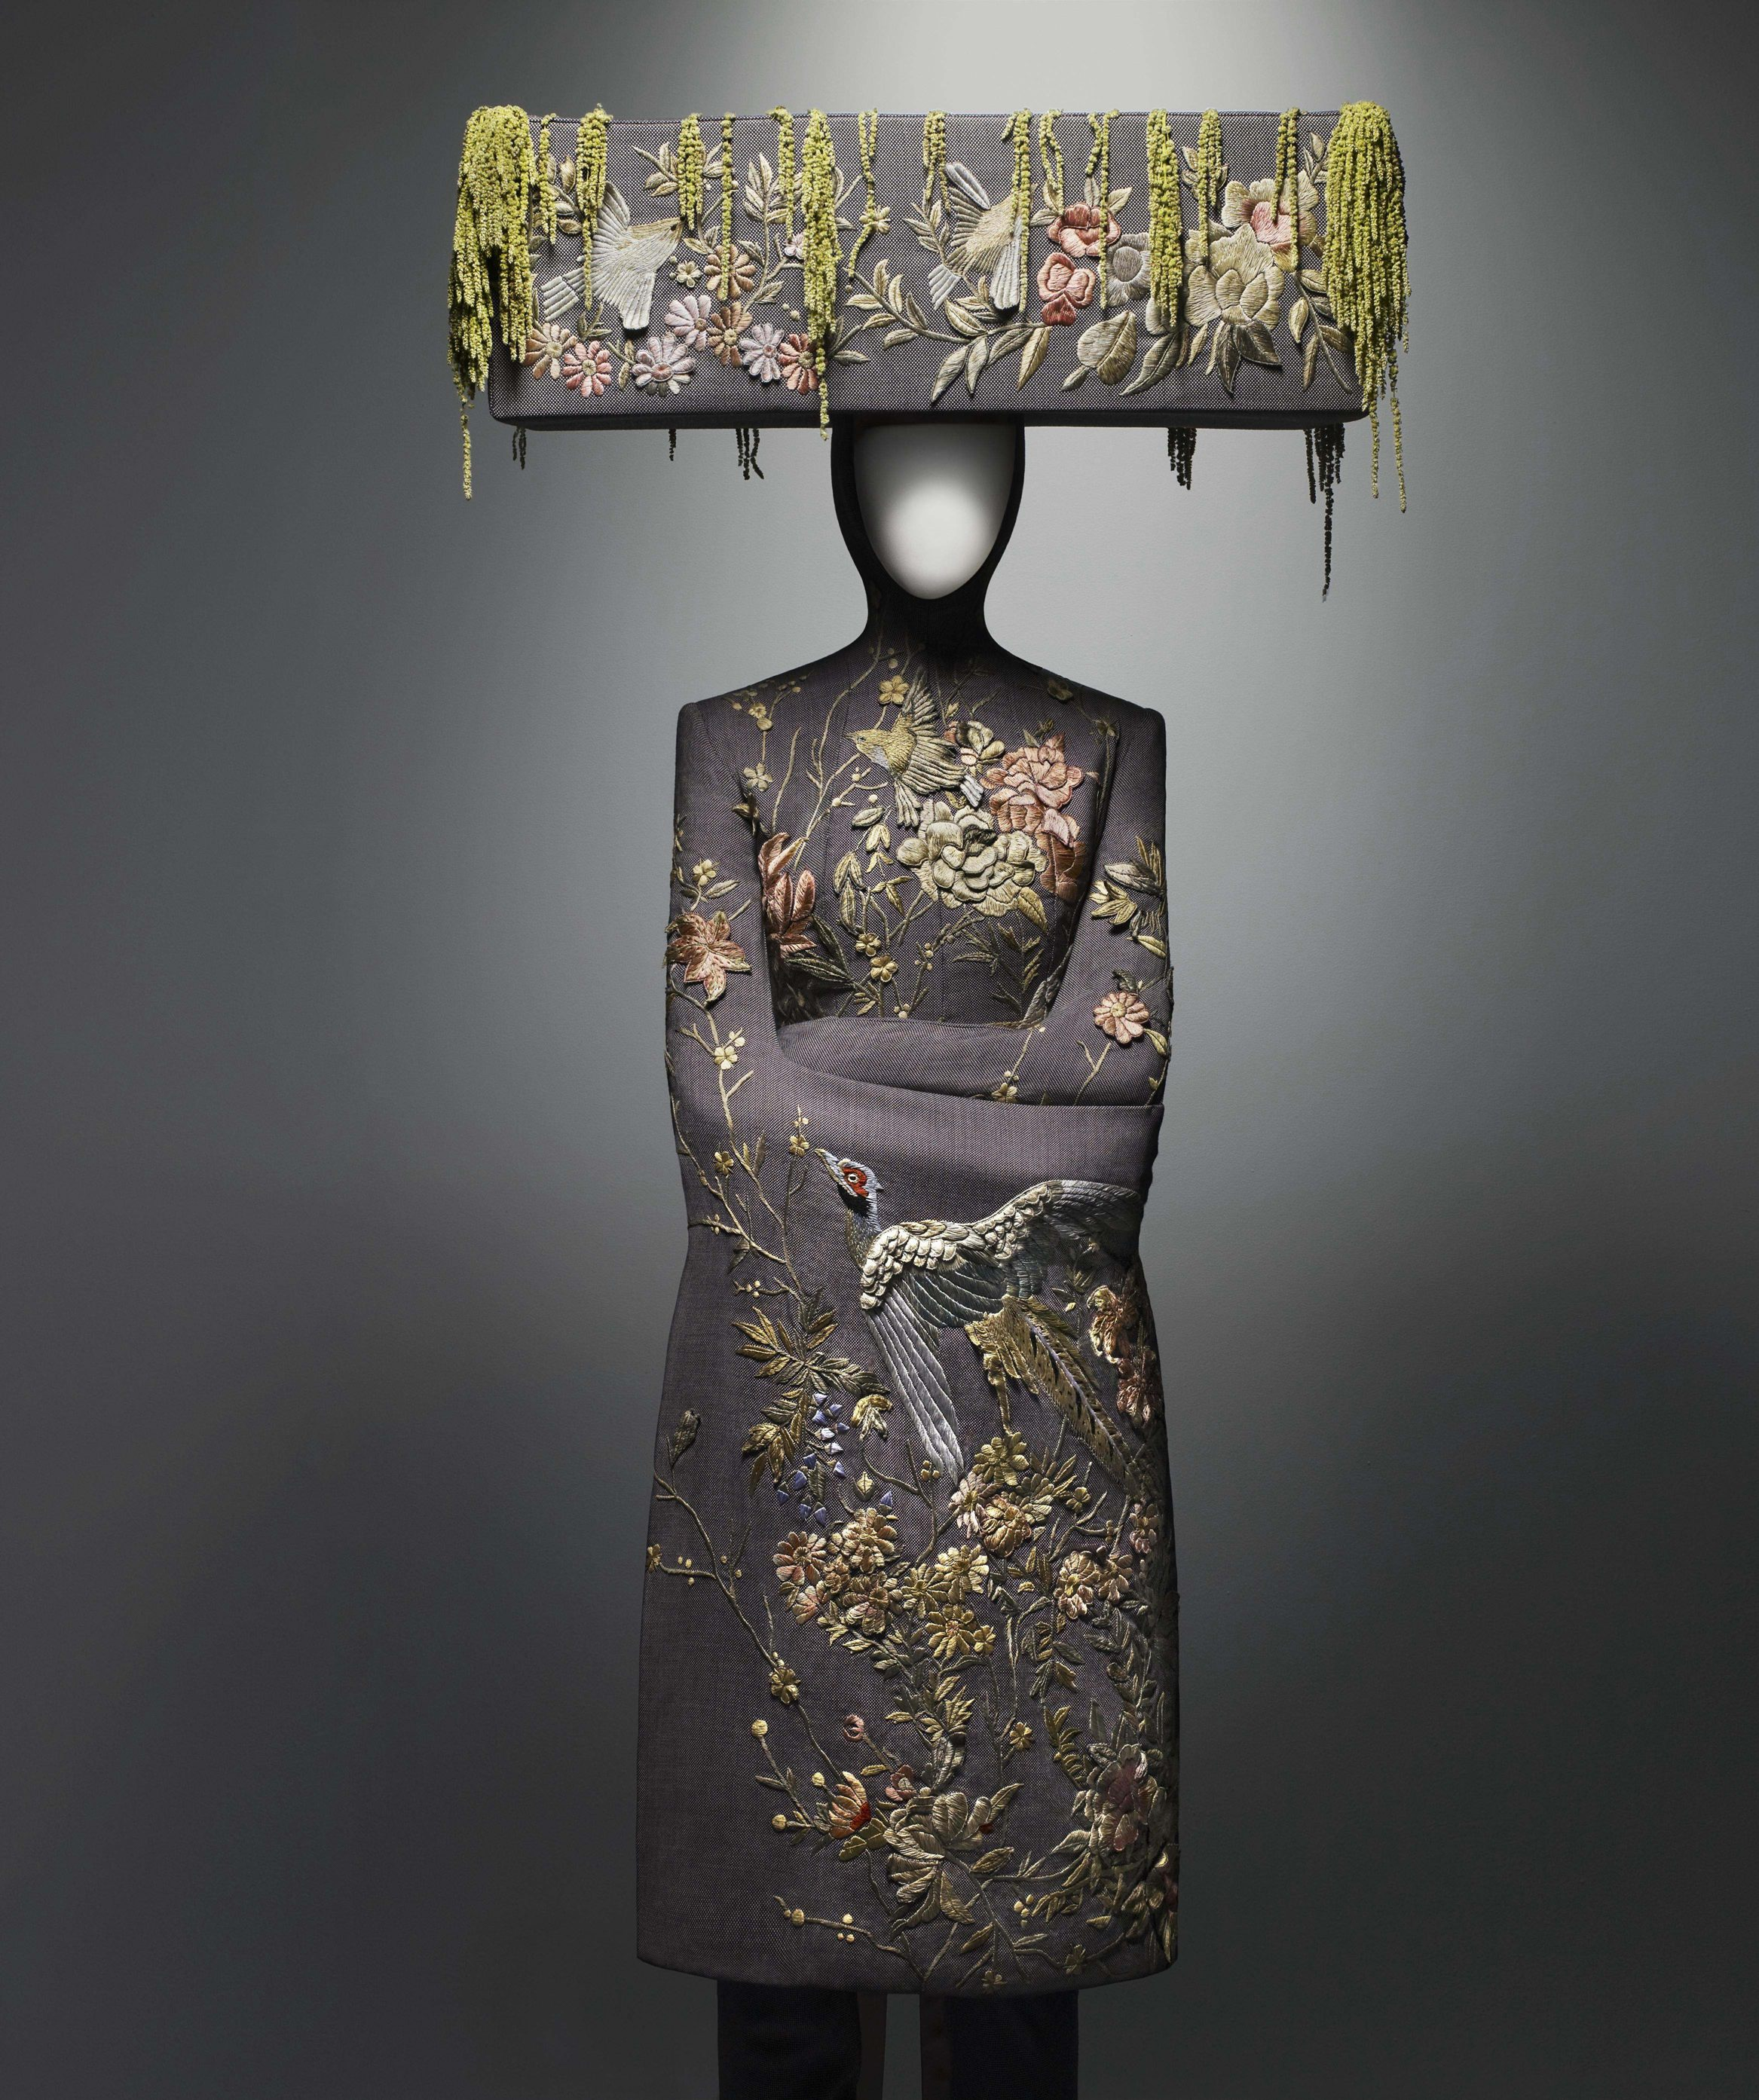 Alexander McQueen's 'Savage Beauty' At The Metropolitan ...